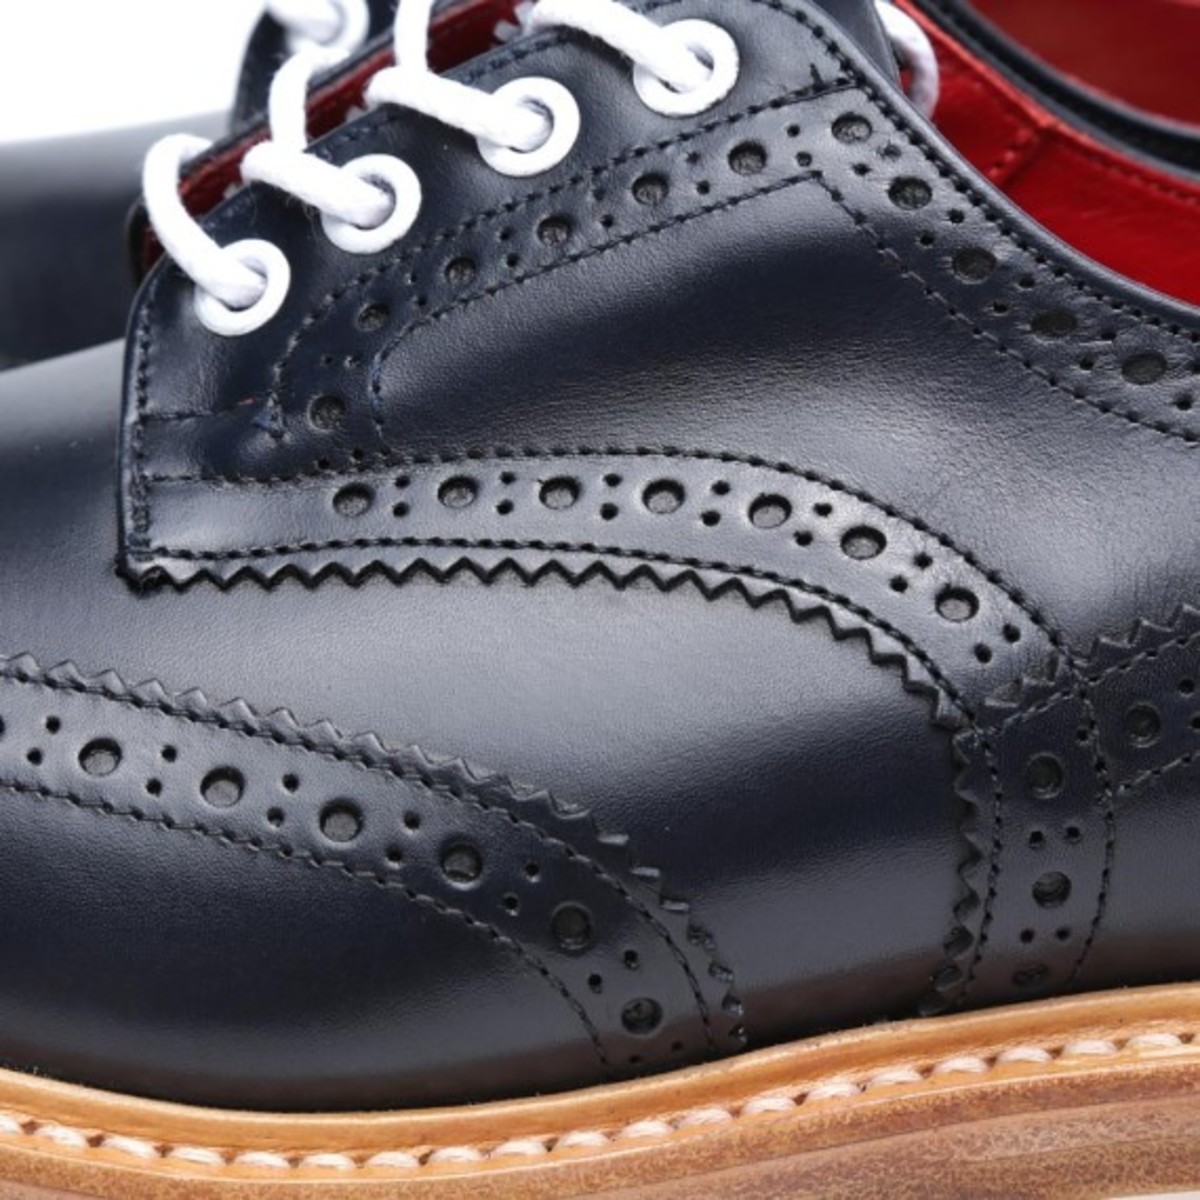 end-x-trickers-bourton-derby-brogue-autumnal-pack-Navy-Aniline-Leather-10